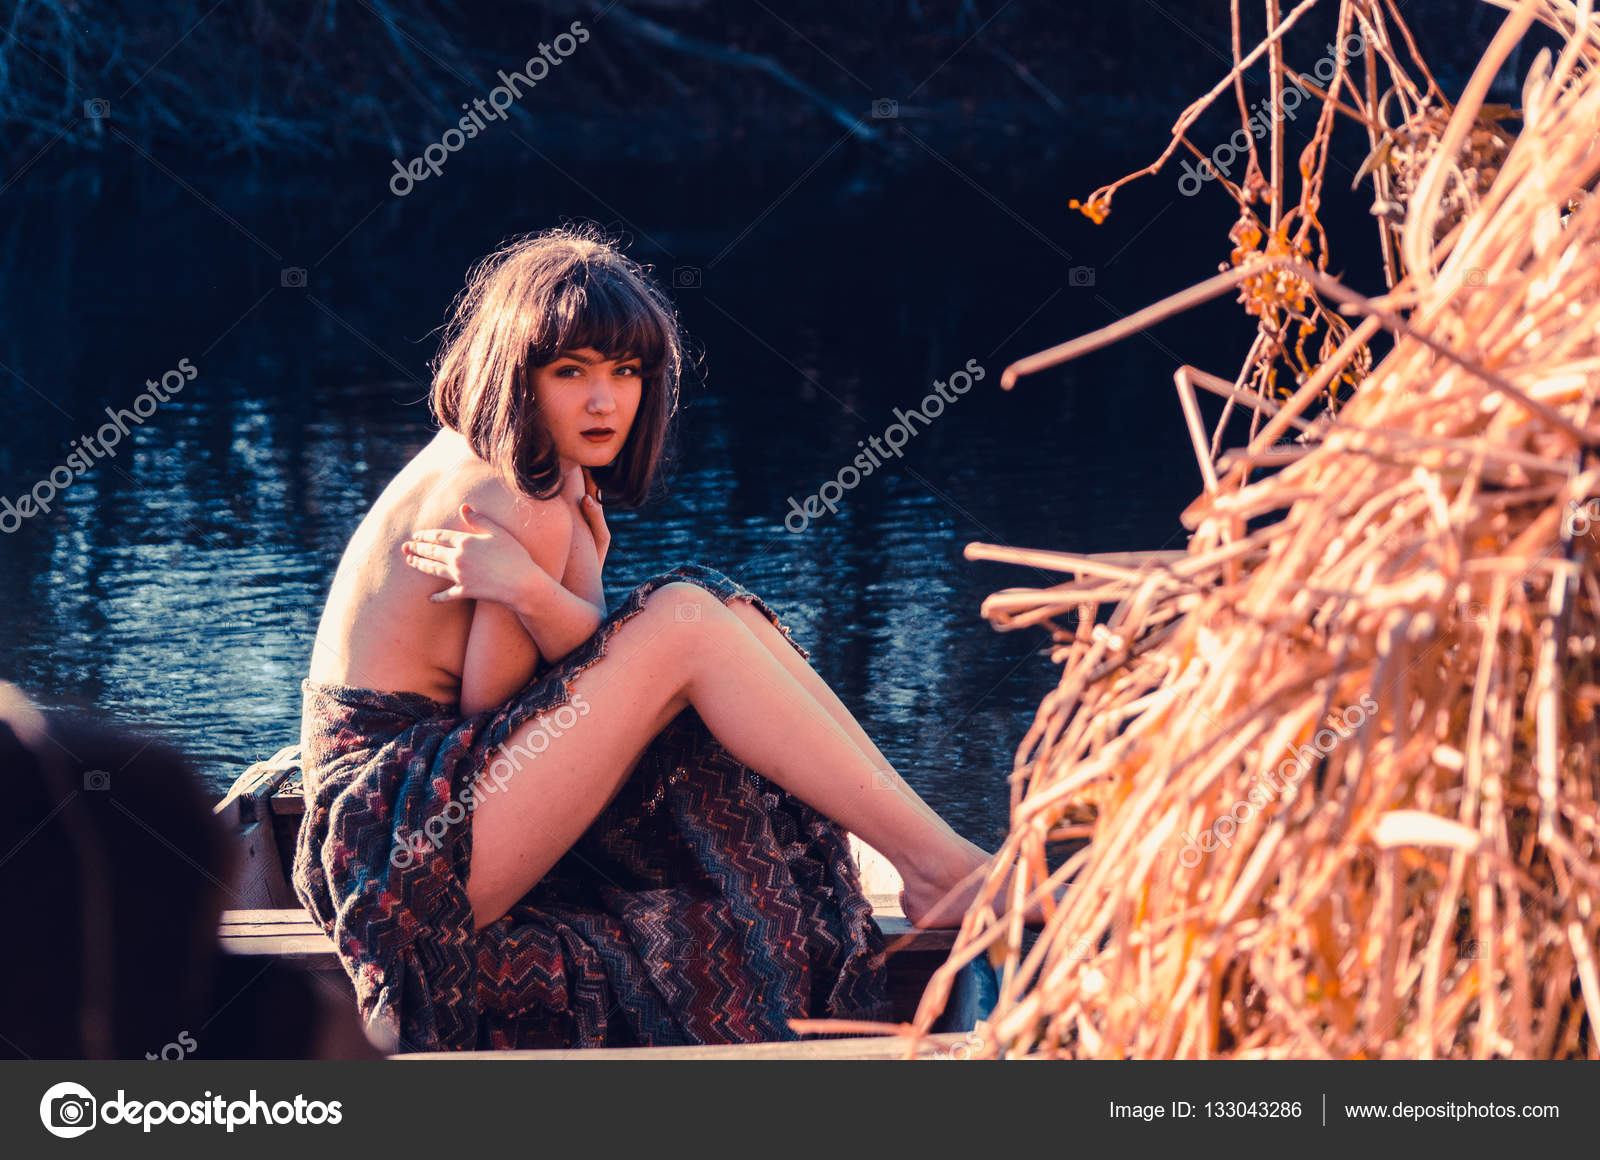 Young Sexy Woman Boat Sunset Girl Has Flower Wreath Her